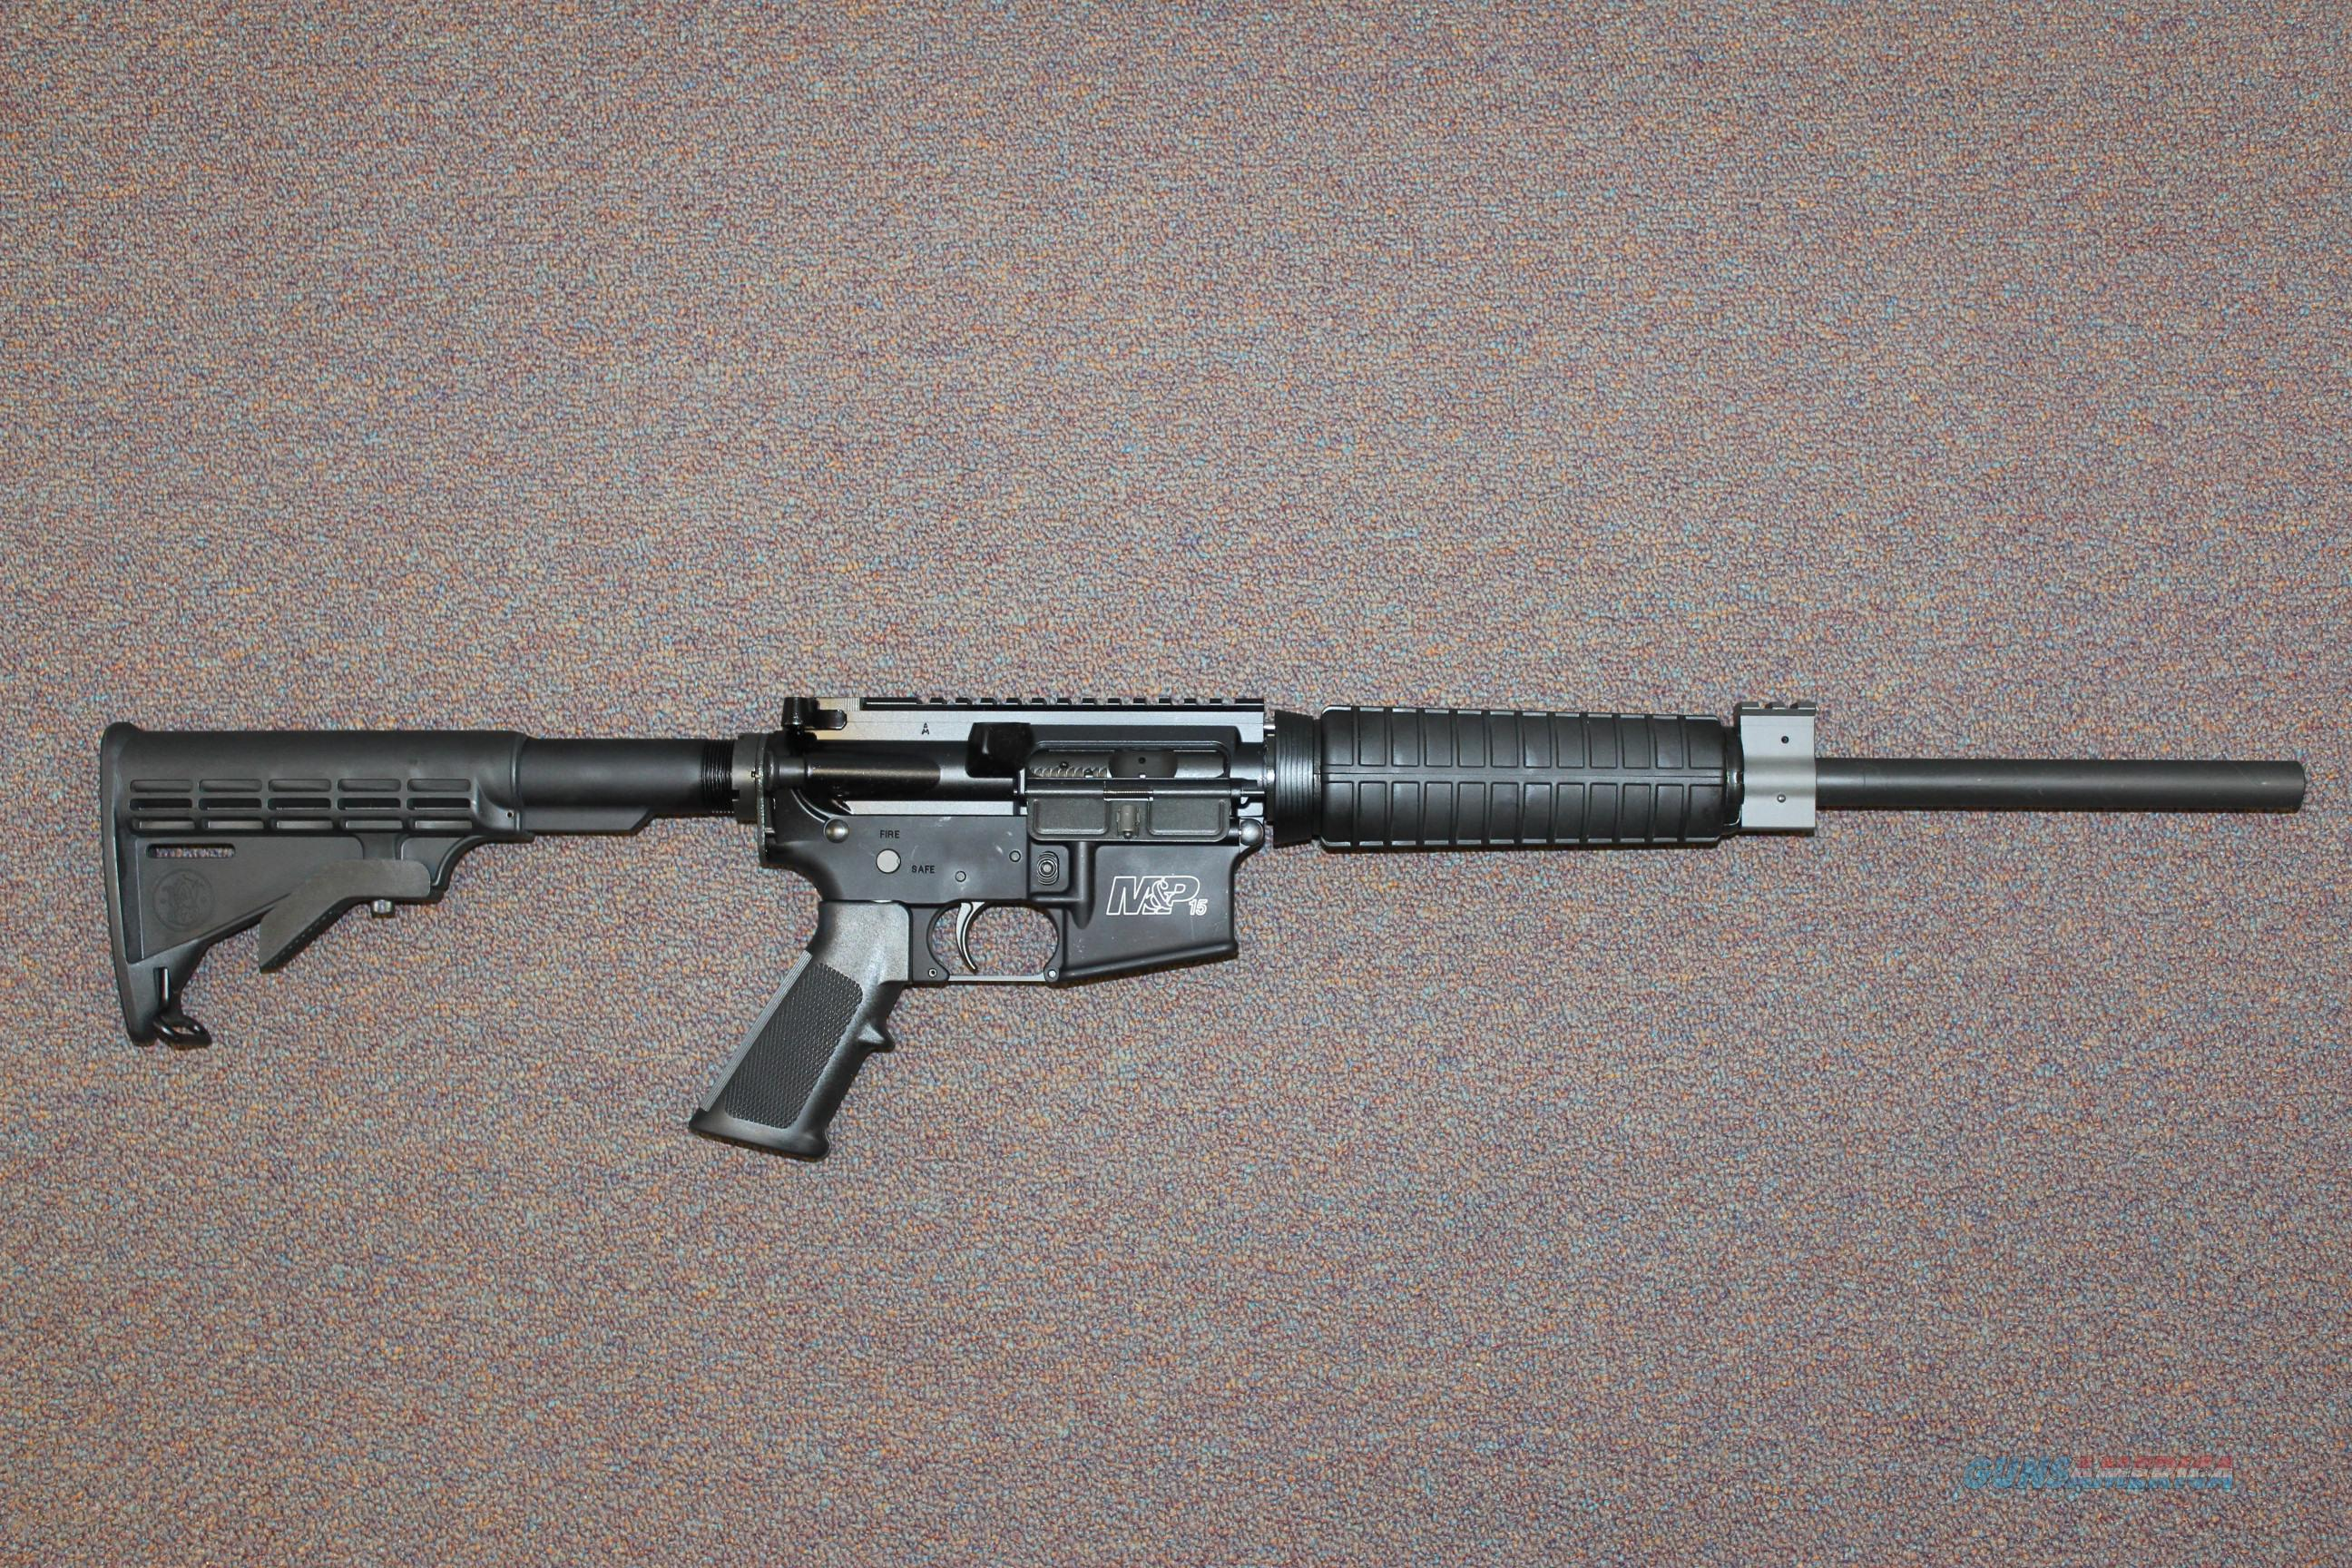 FOR SALE/TRADE: CLOSEOUT!!!! SMITH & WESSON M&P 15ORC  Guns > Rifles > Smith & Wesson Rifles > M&P